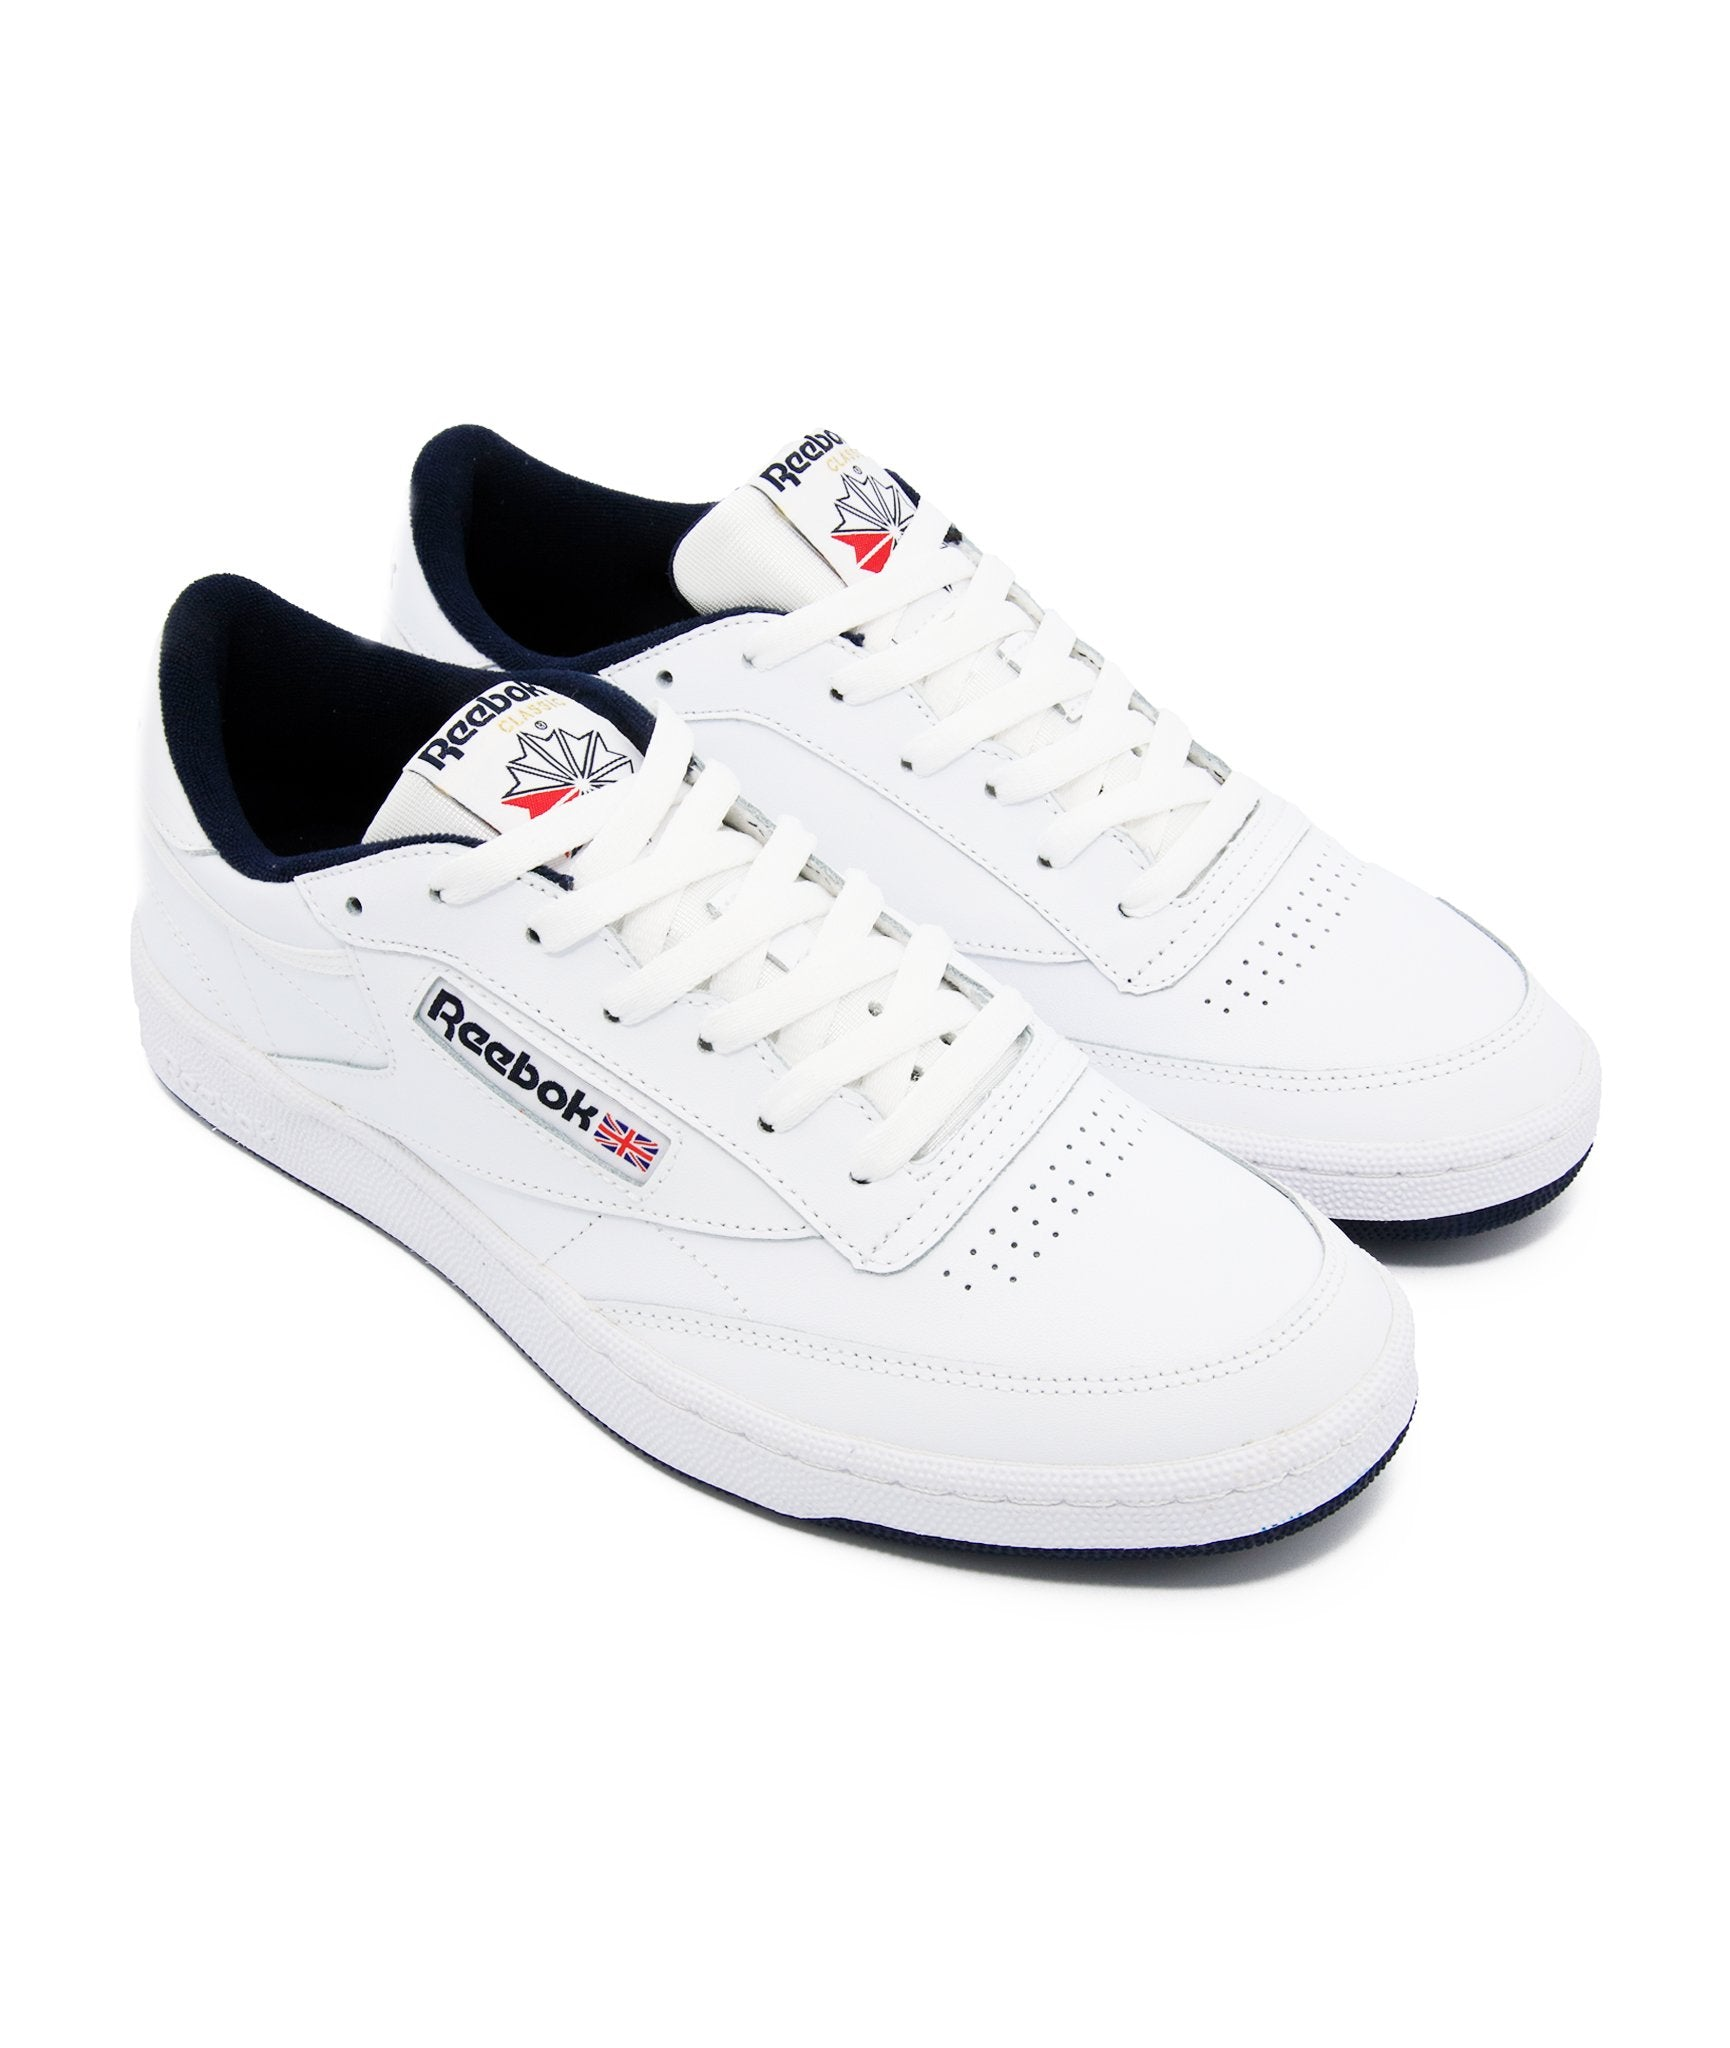 Reebok Club C 85 - White